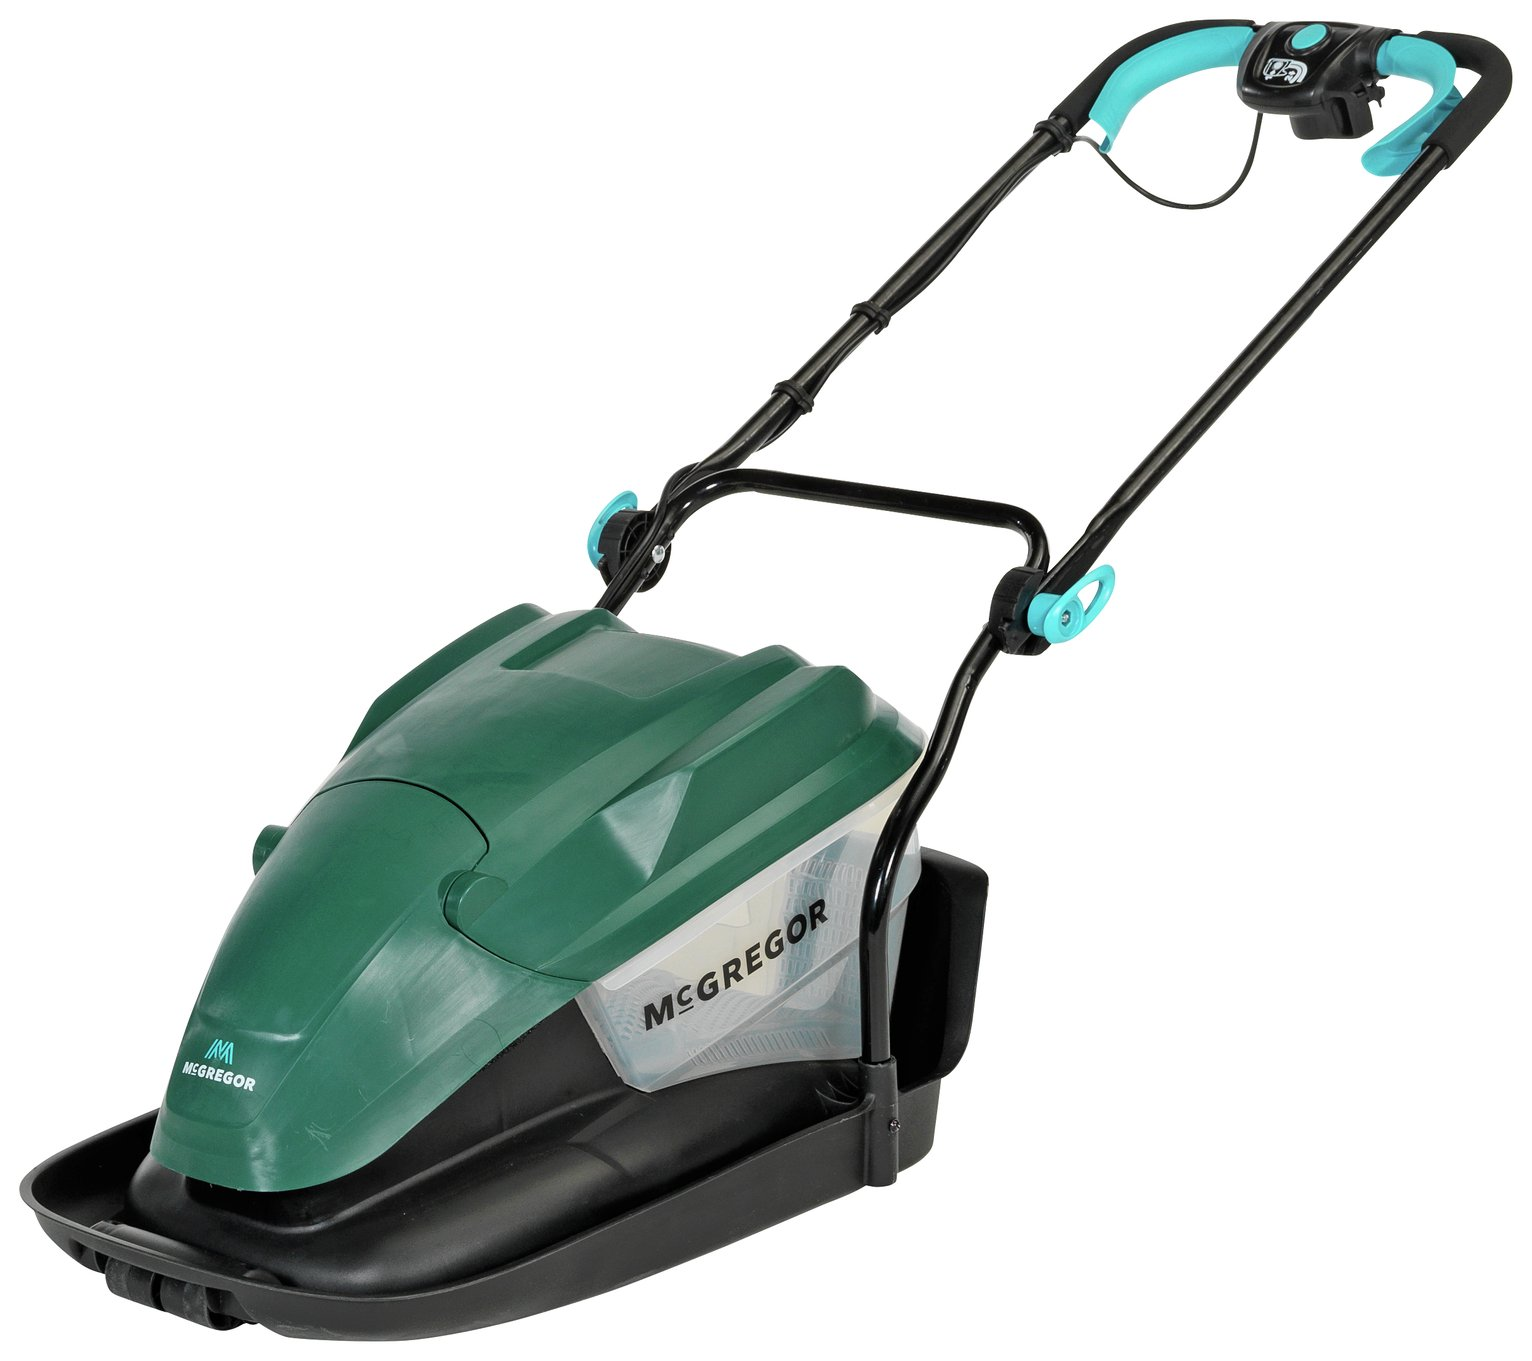 McGregor 30cm Hover Collect Lawnmower - 1450W at Argos